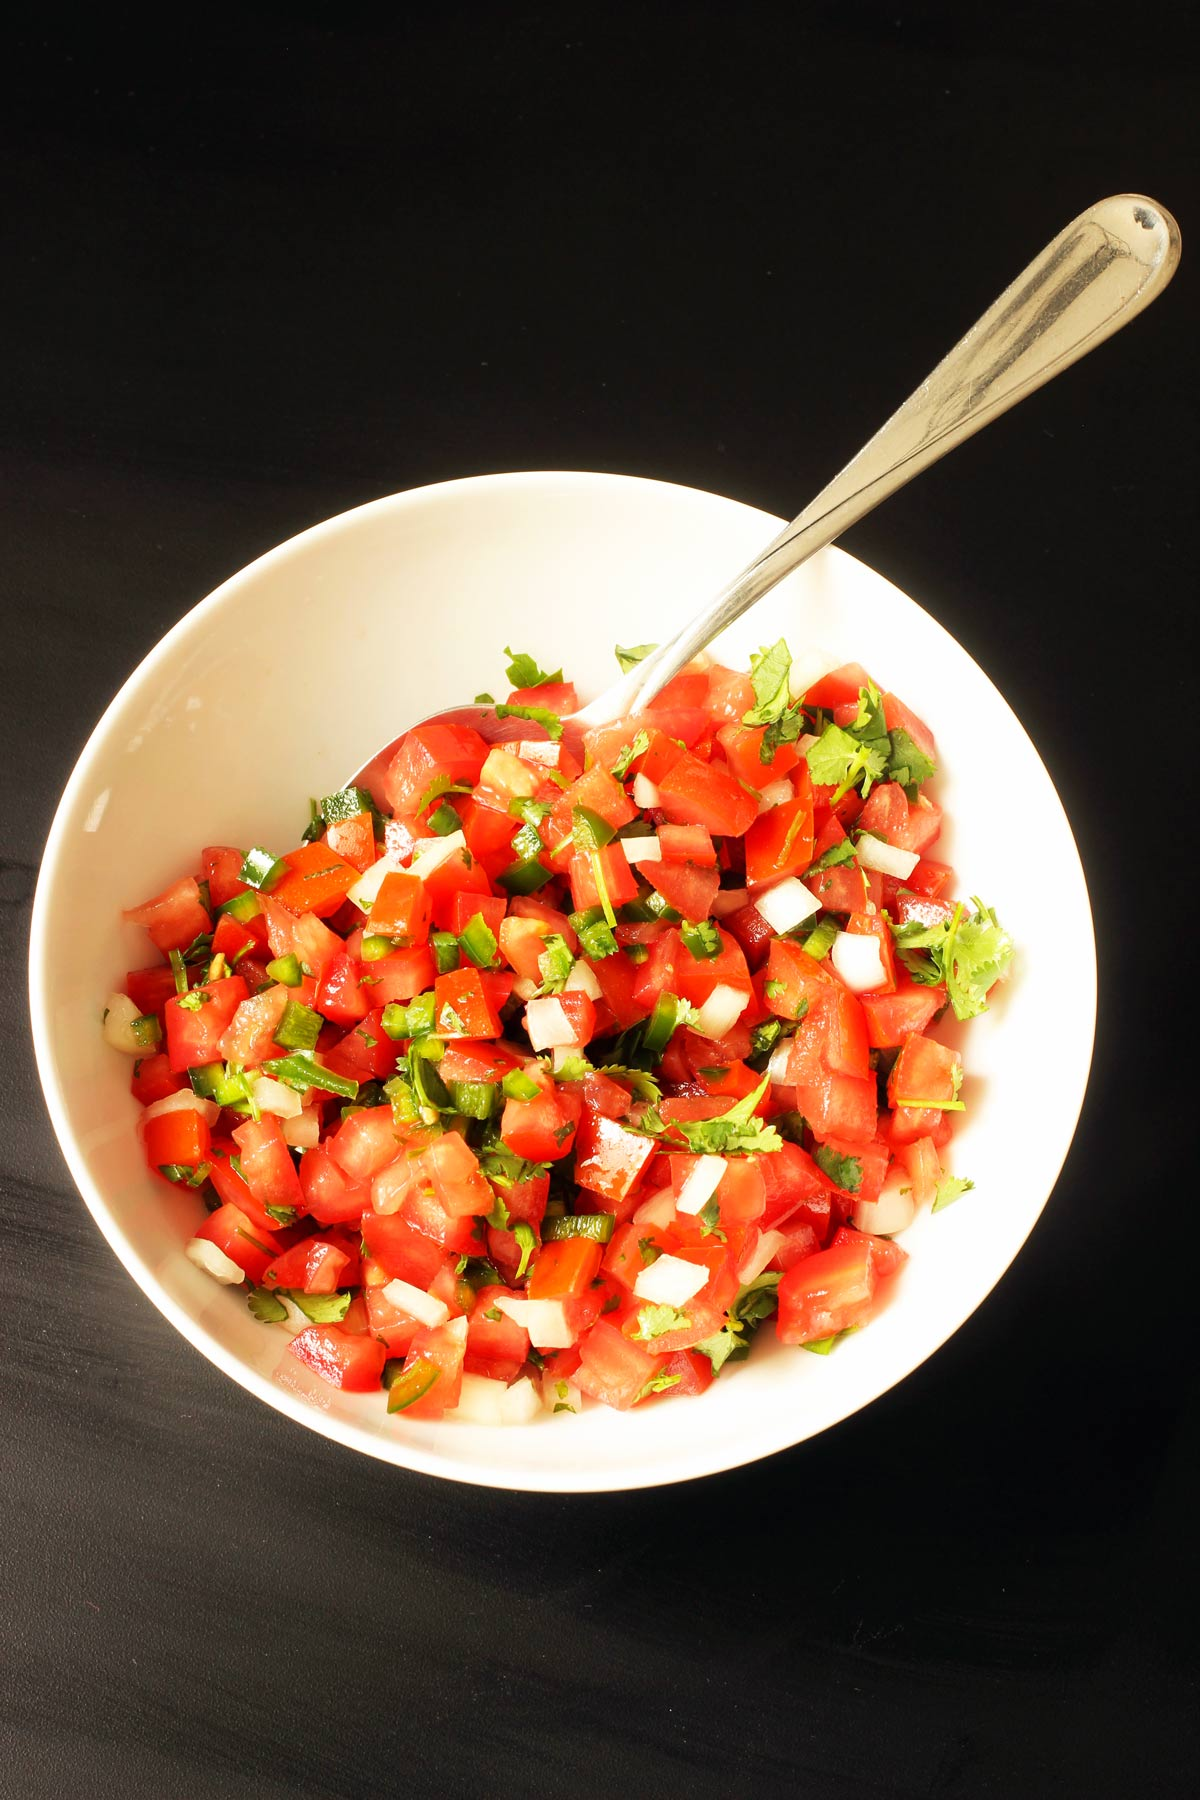 finished bowl of pico de gallo in white bowl with large spoon.